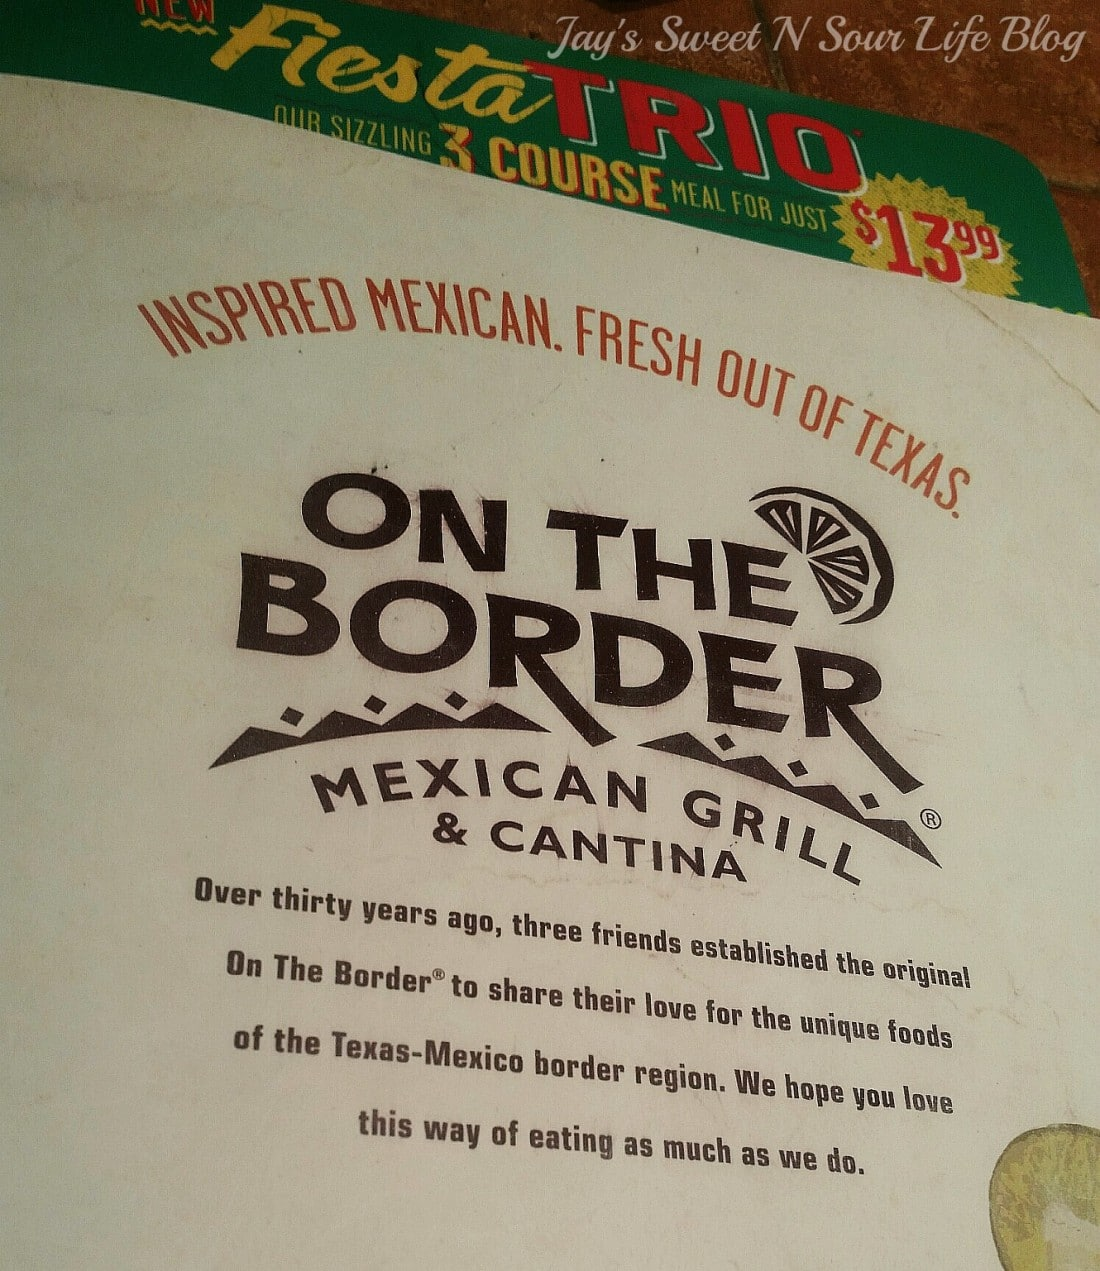 Enjoy a family dinner night out at your local On The Border Mexican Grill and Cantina. See all of the new delicious foods they offer along with my family's favorite dishes.